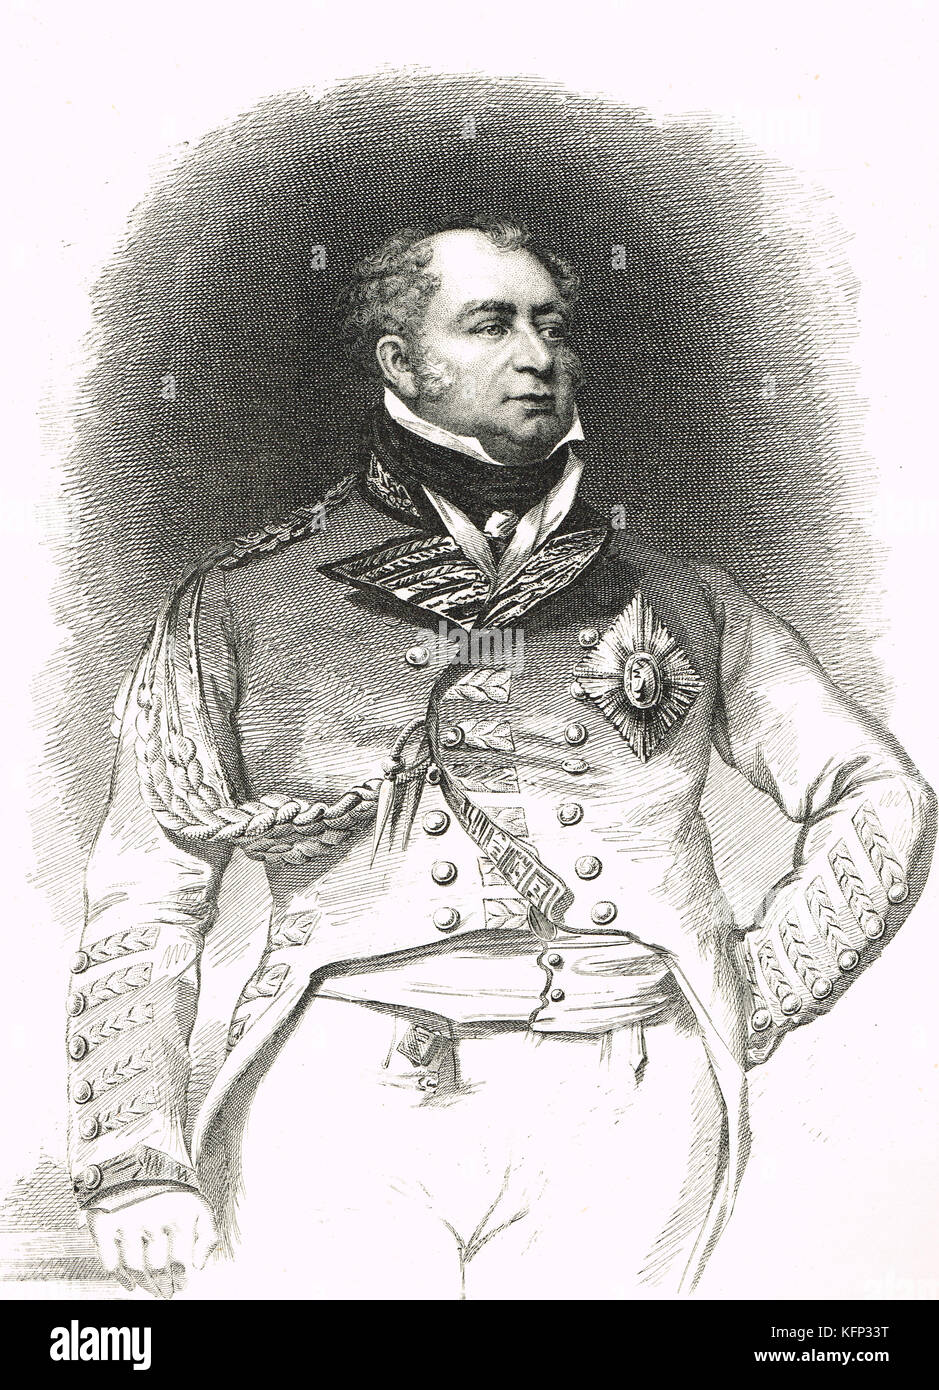 Prince Frederick, Duke of York and Albany, in 1793 - Stock Image